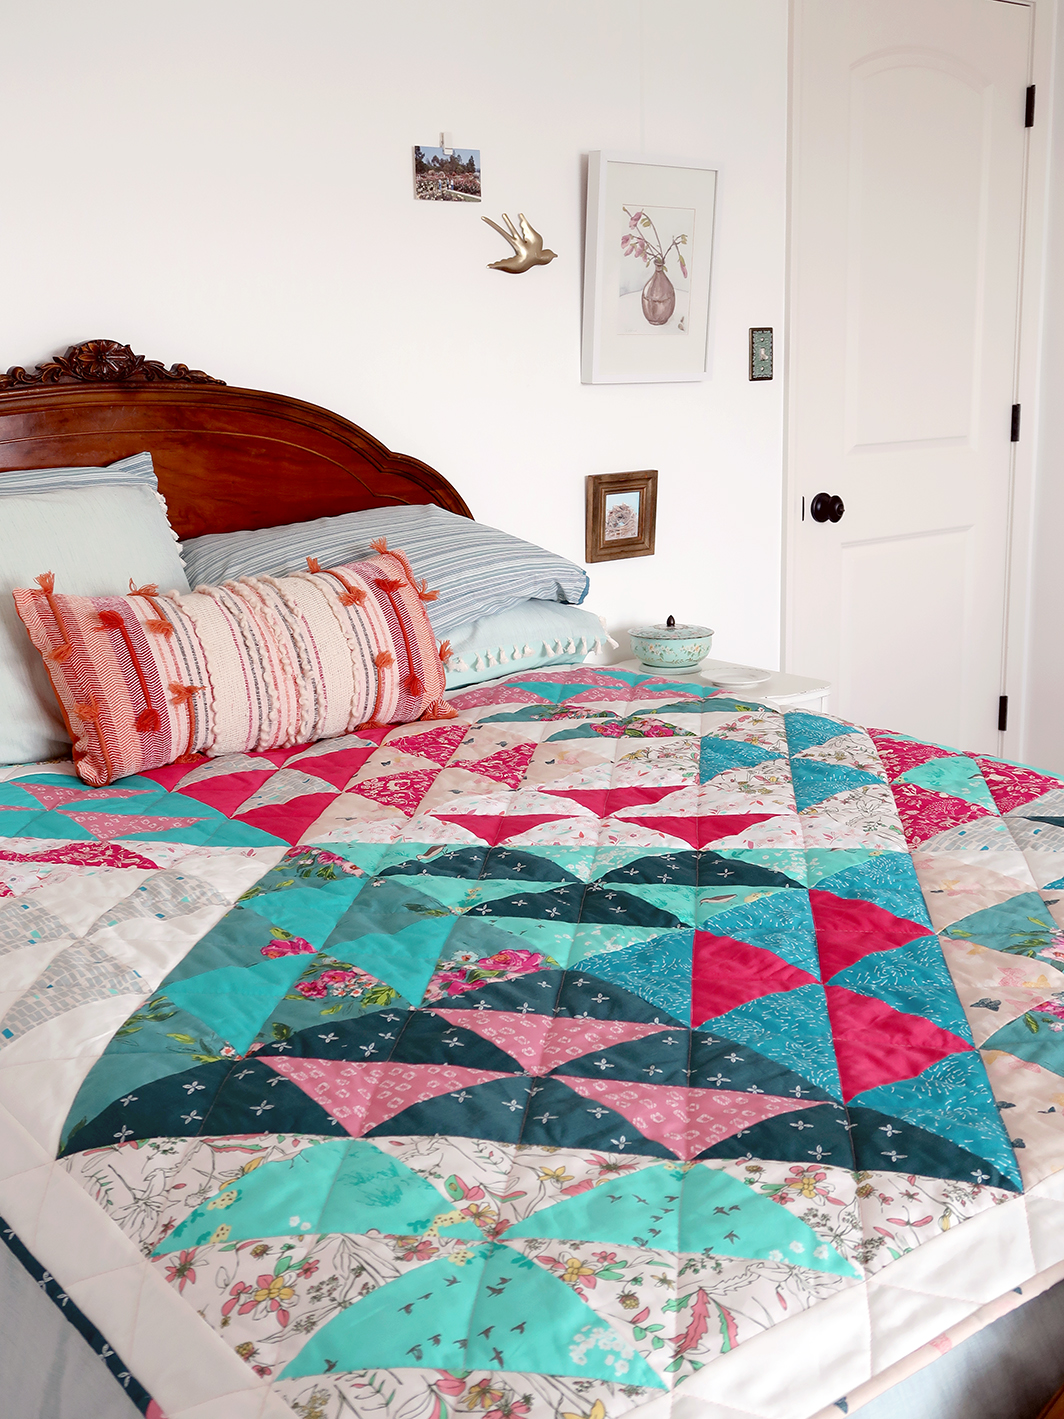 Feathered Nest Quilt 5.jpg